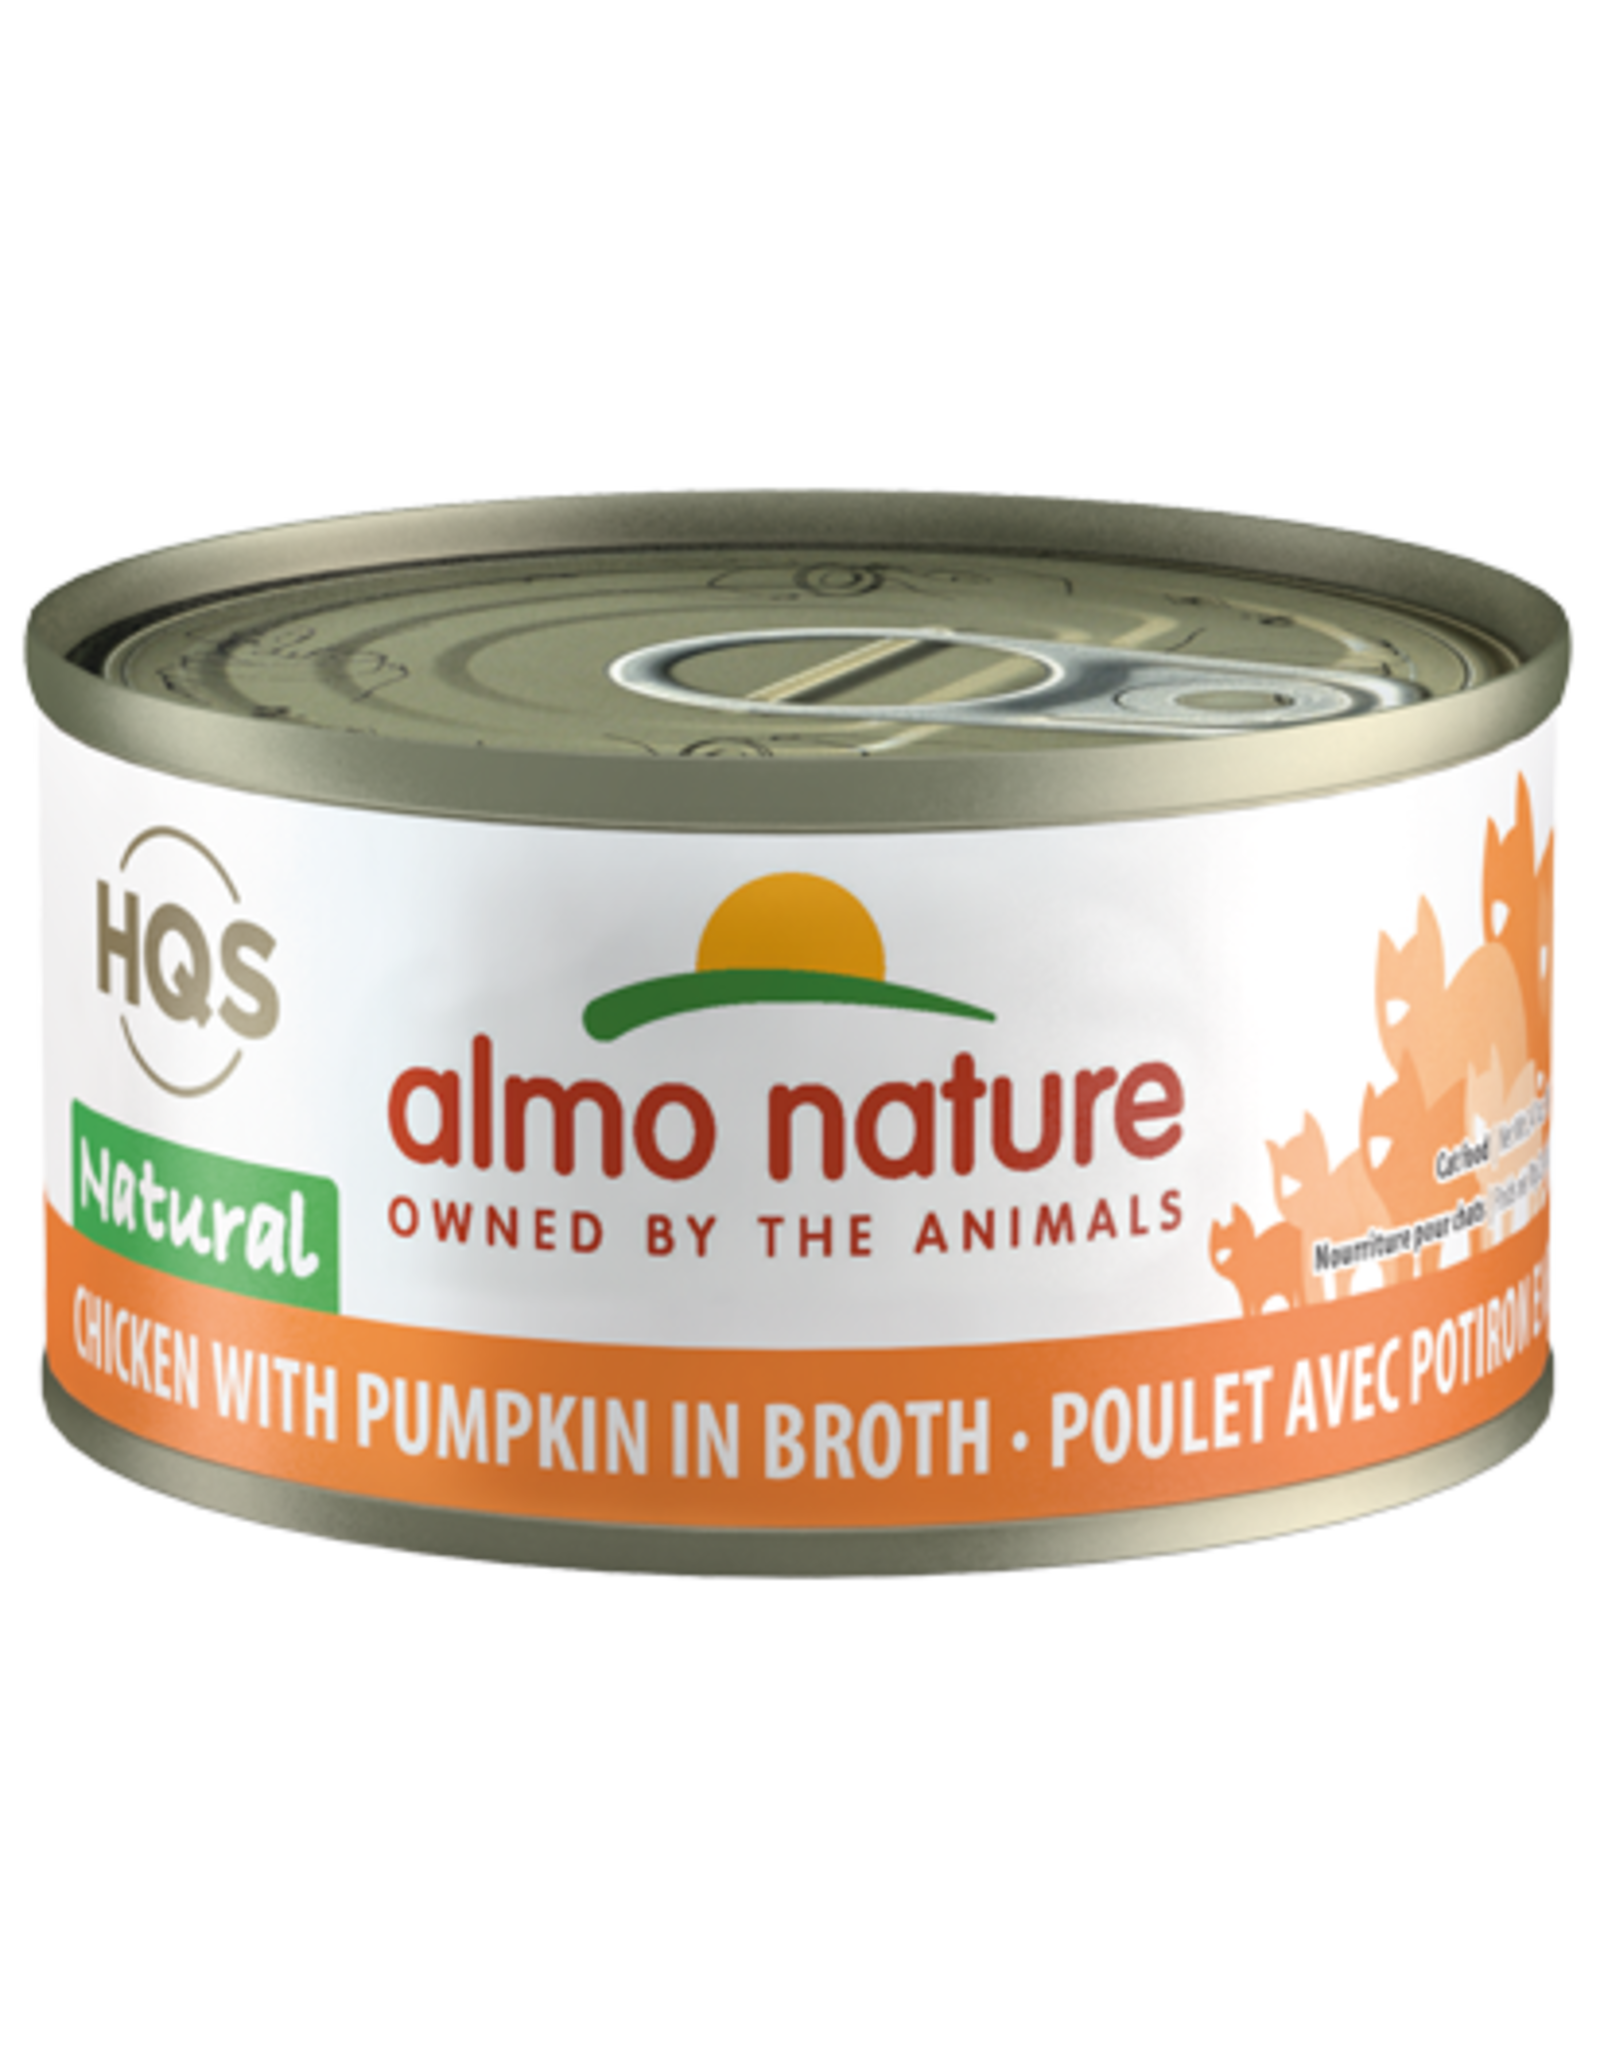 Almo Nature Almo Nature HQS Natural Wet Cat Food Chicken with Pumpkin in Broth 2.47oz Can Grain Free